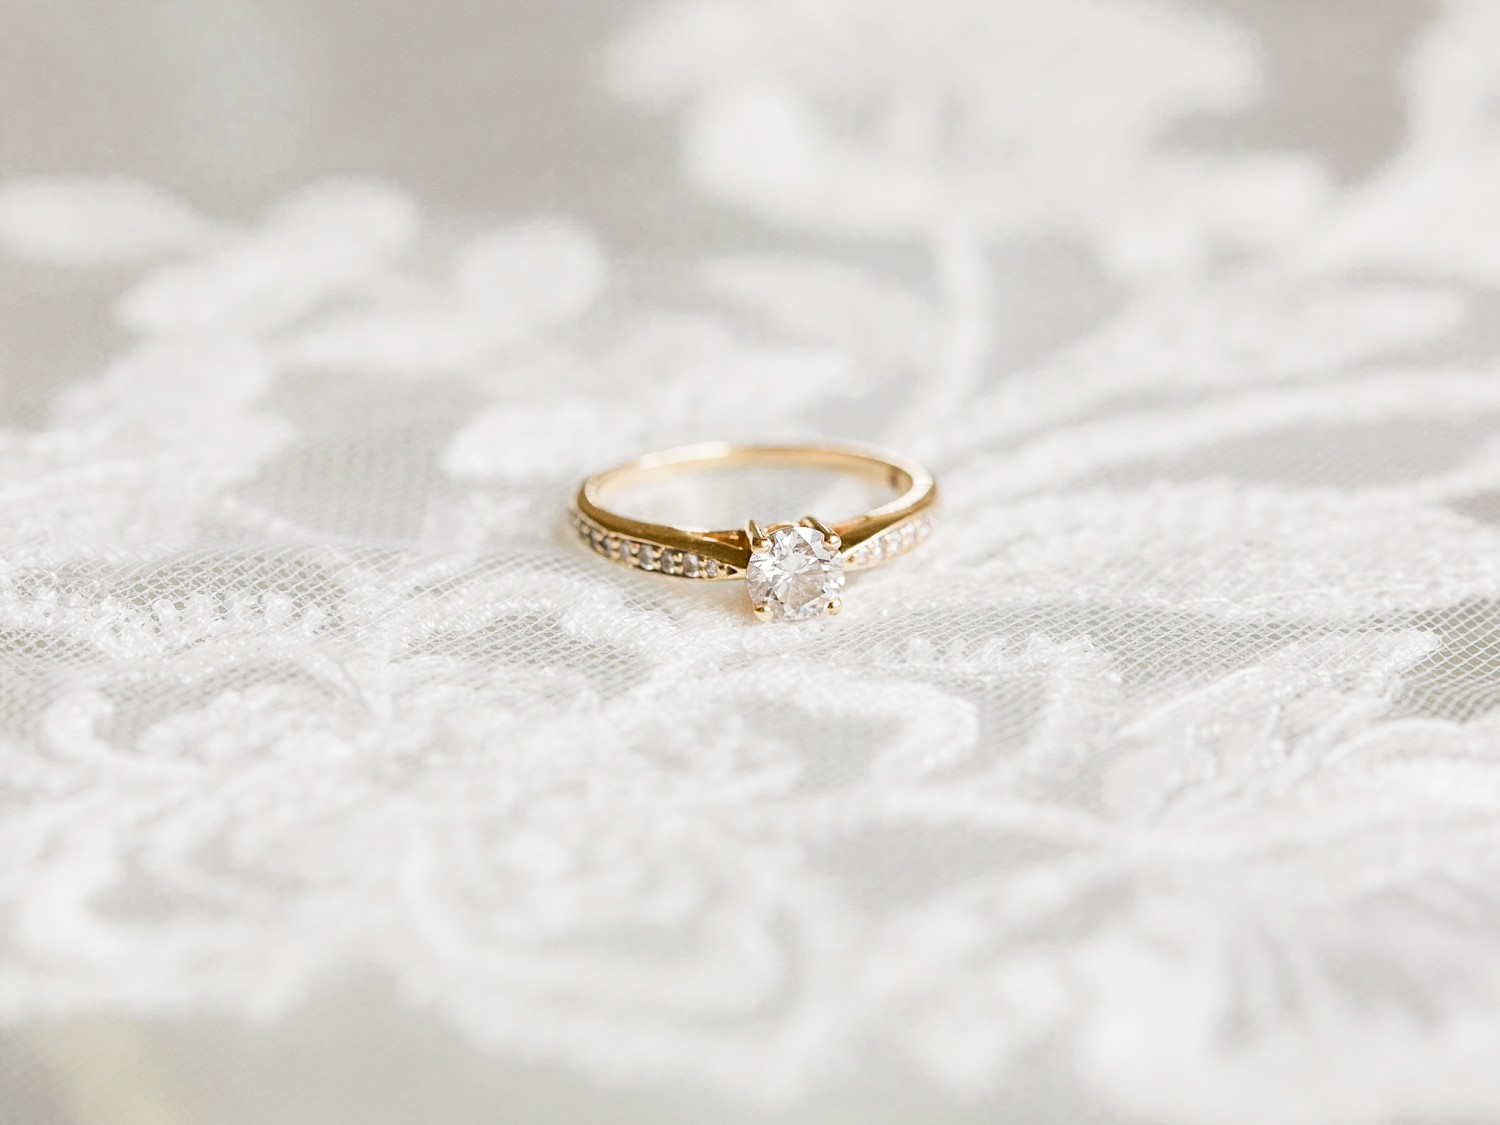 Gold and diamond engagement ring by Fine Art Wedding Photographer based in the UK